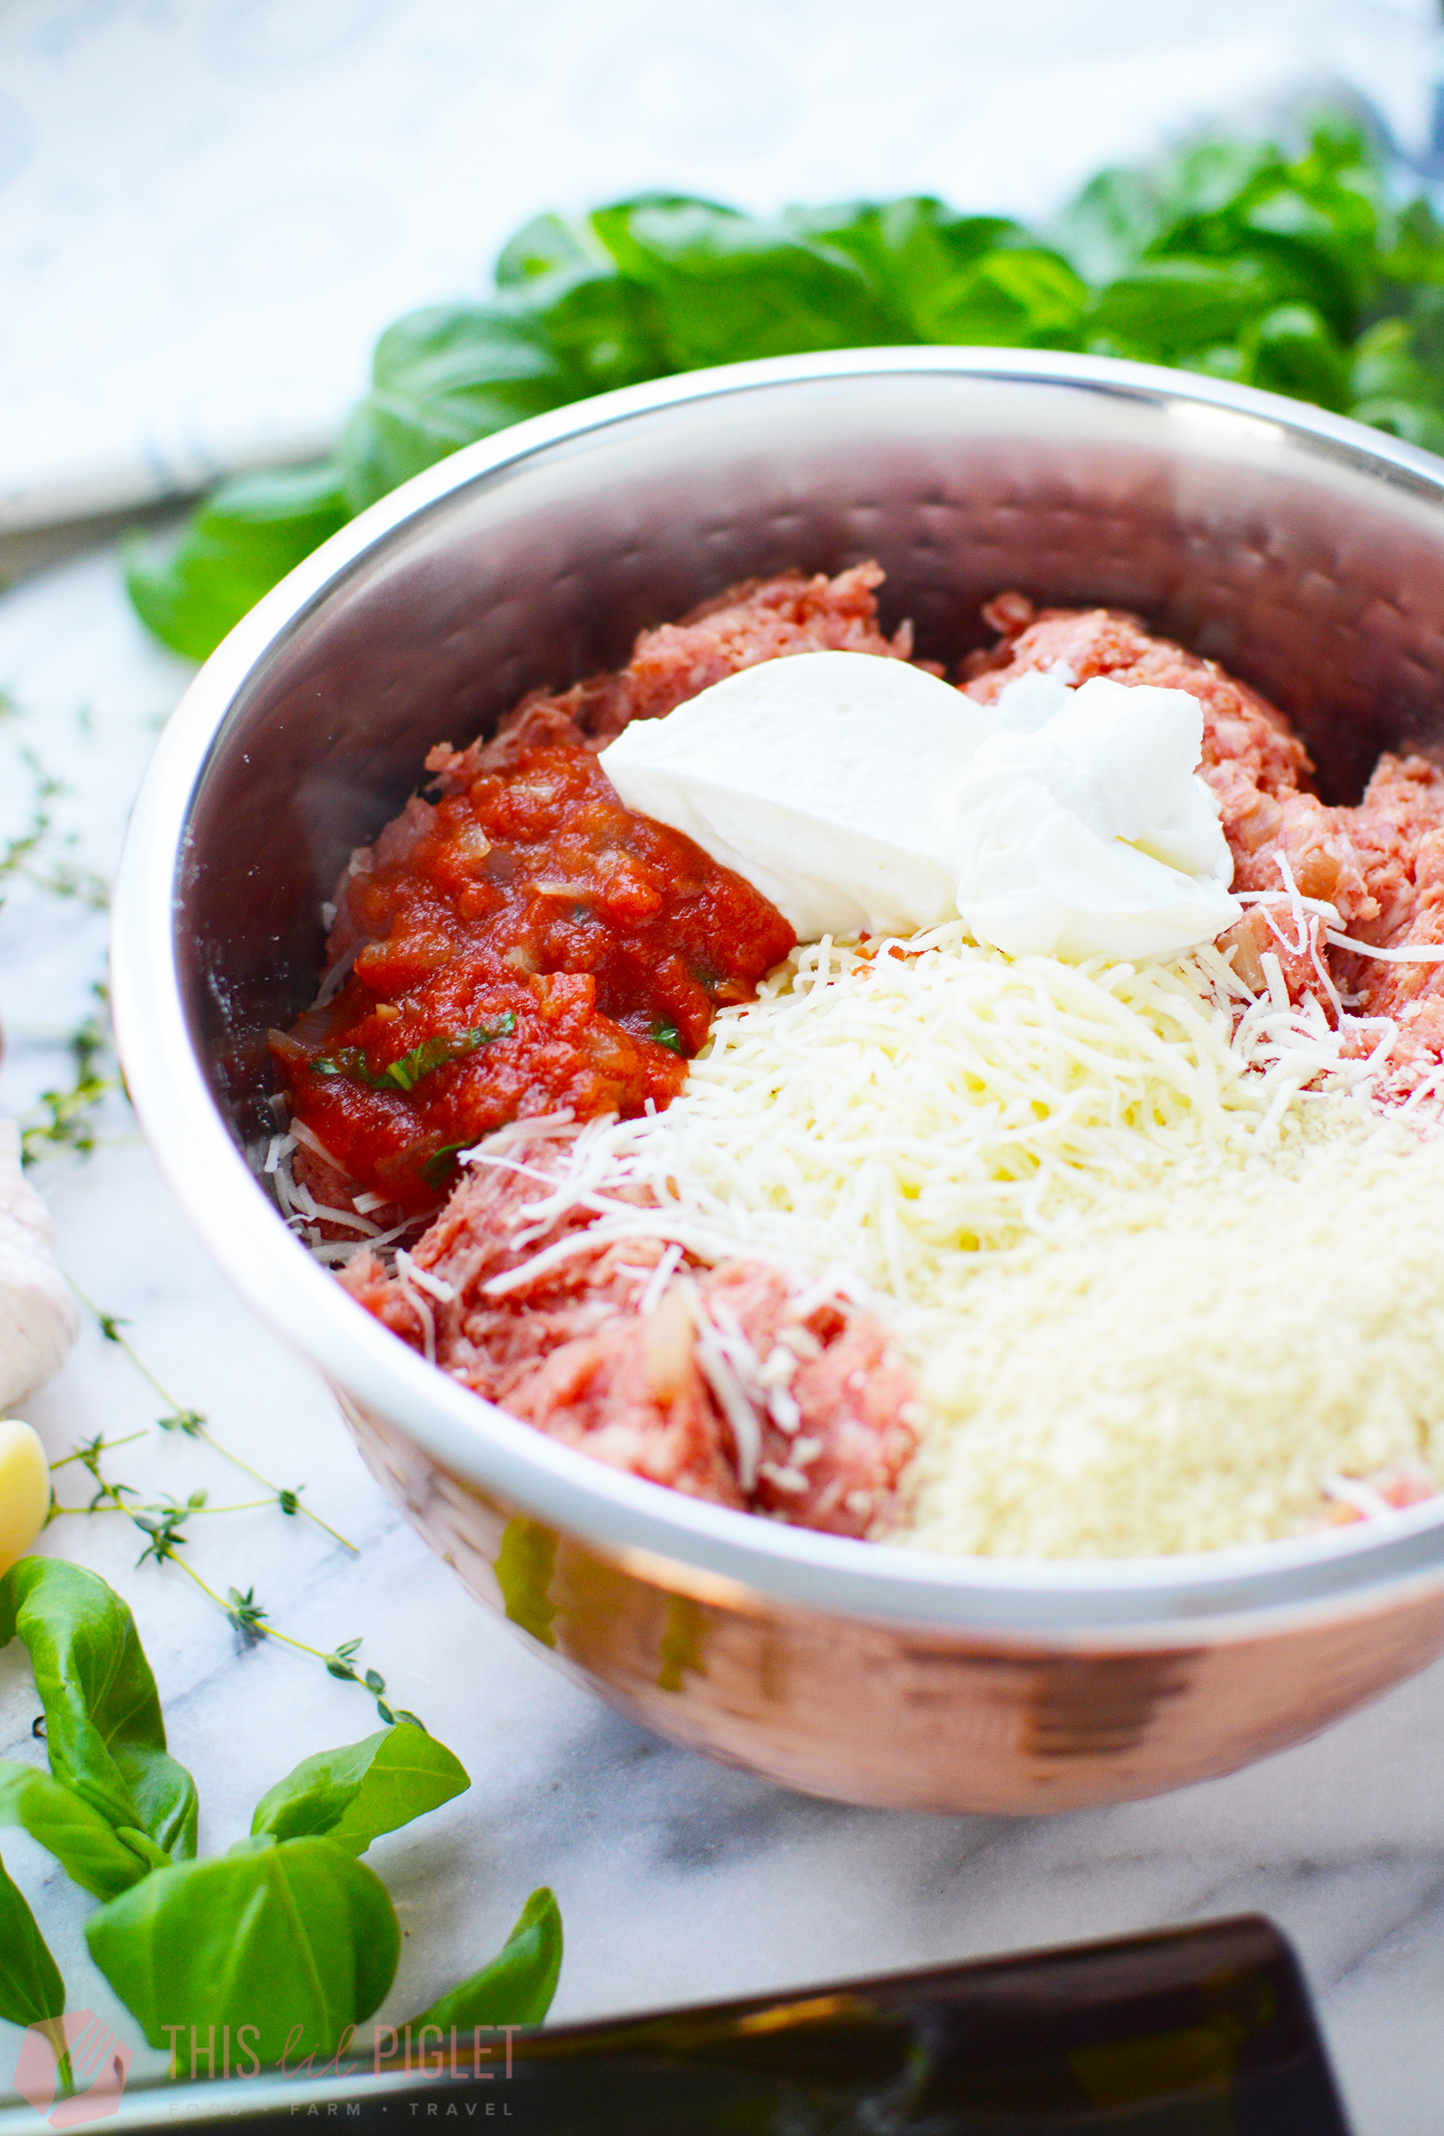 Cheesy Meatball Pasta Bake: Meatball Mixture // thislilpiglet.net